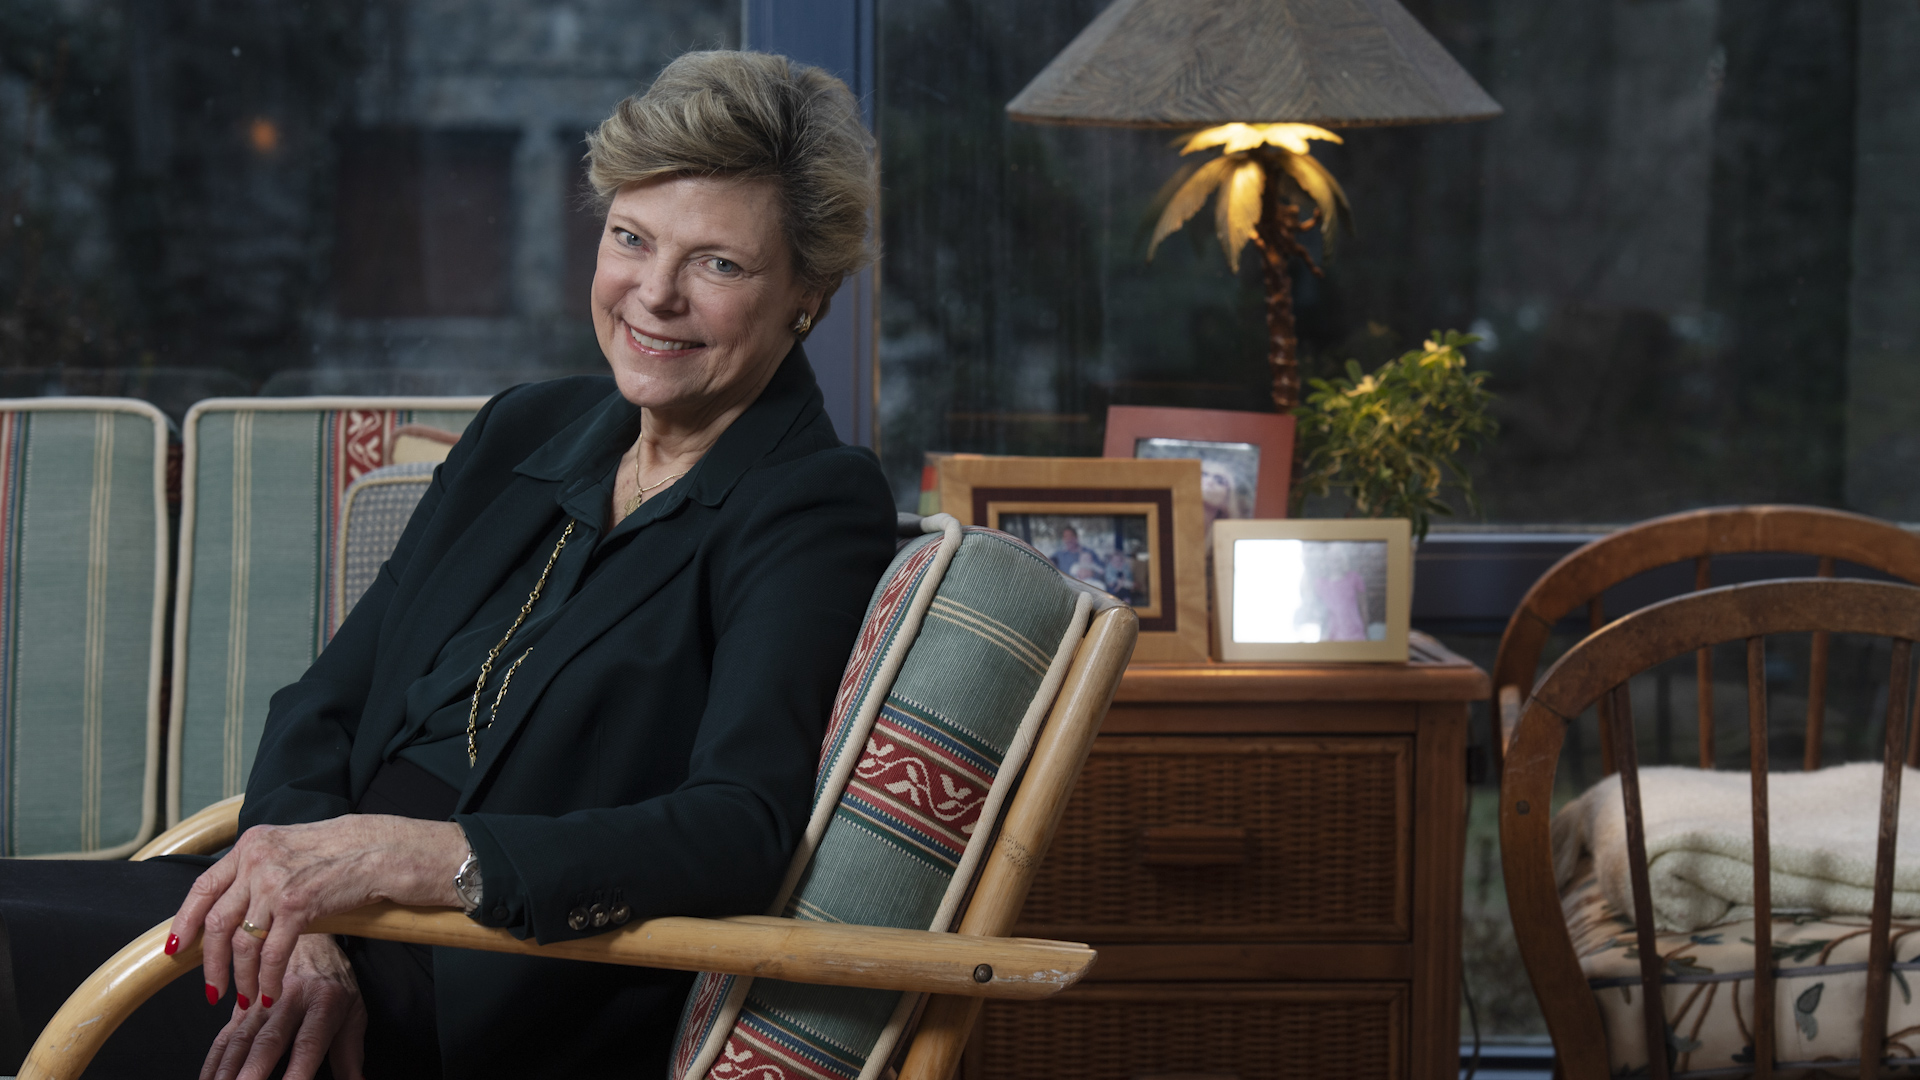 Trump on death of Cokie Roberts: 'She never treated me nicely. But I would like to wish her family well.'